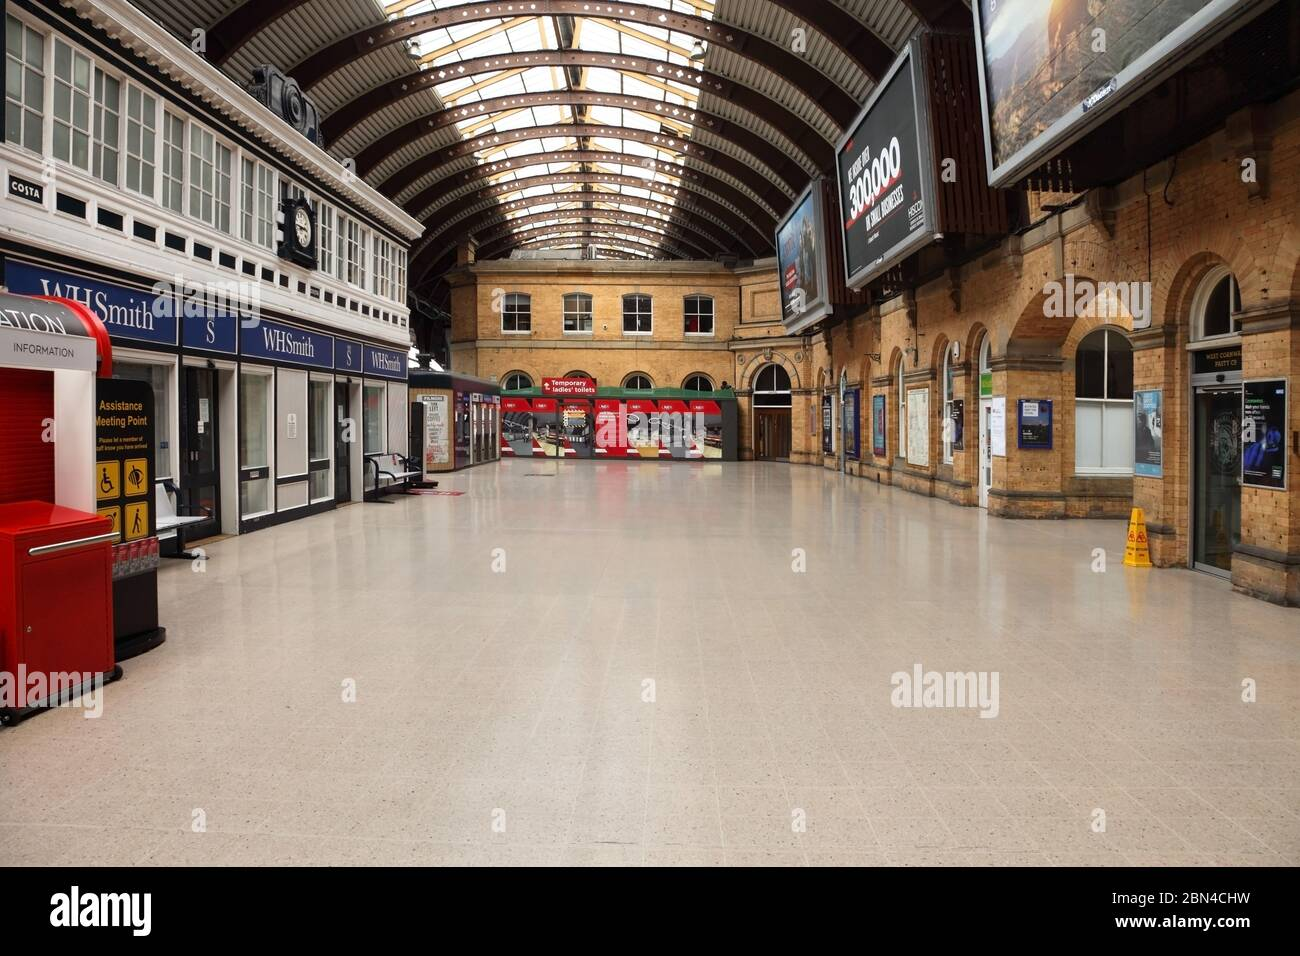 York Station Uk During Lockdown For The Coronavirus Or Covid 19 Travel Restrictions Stock Photo Alamy